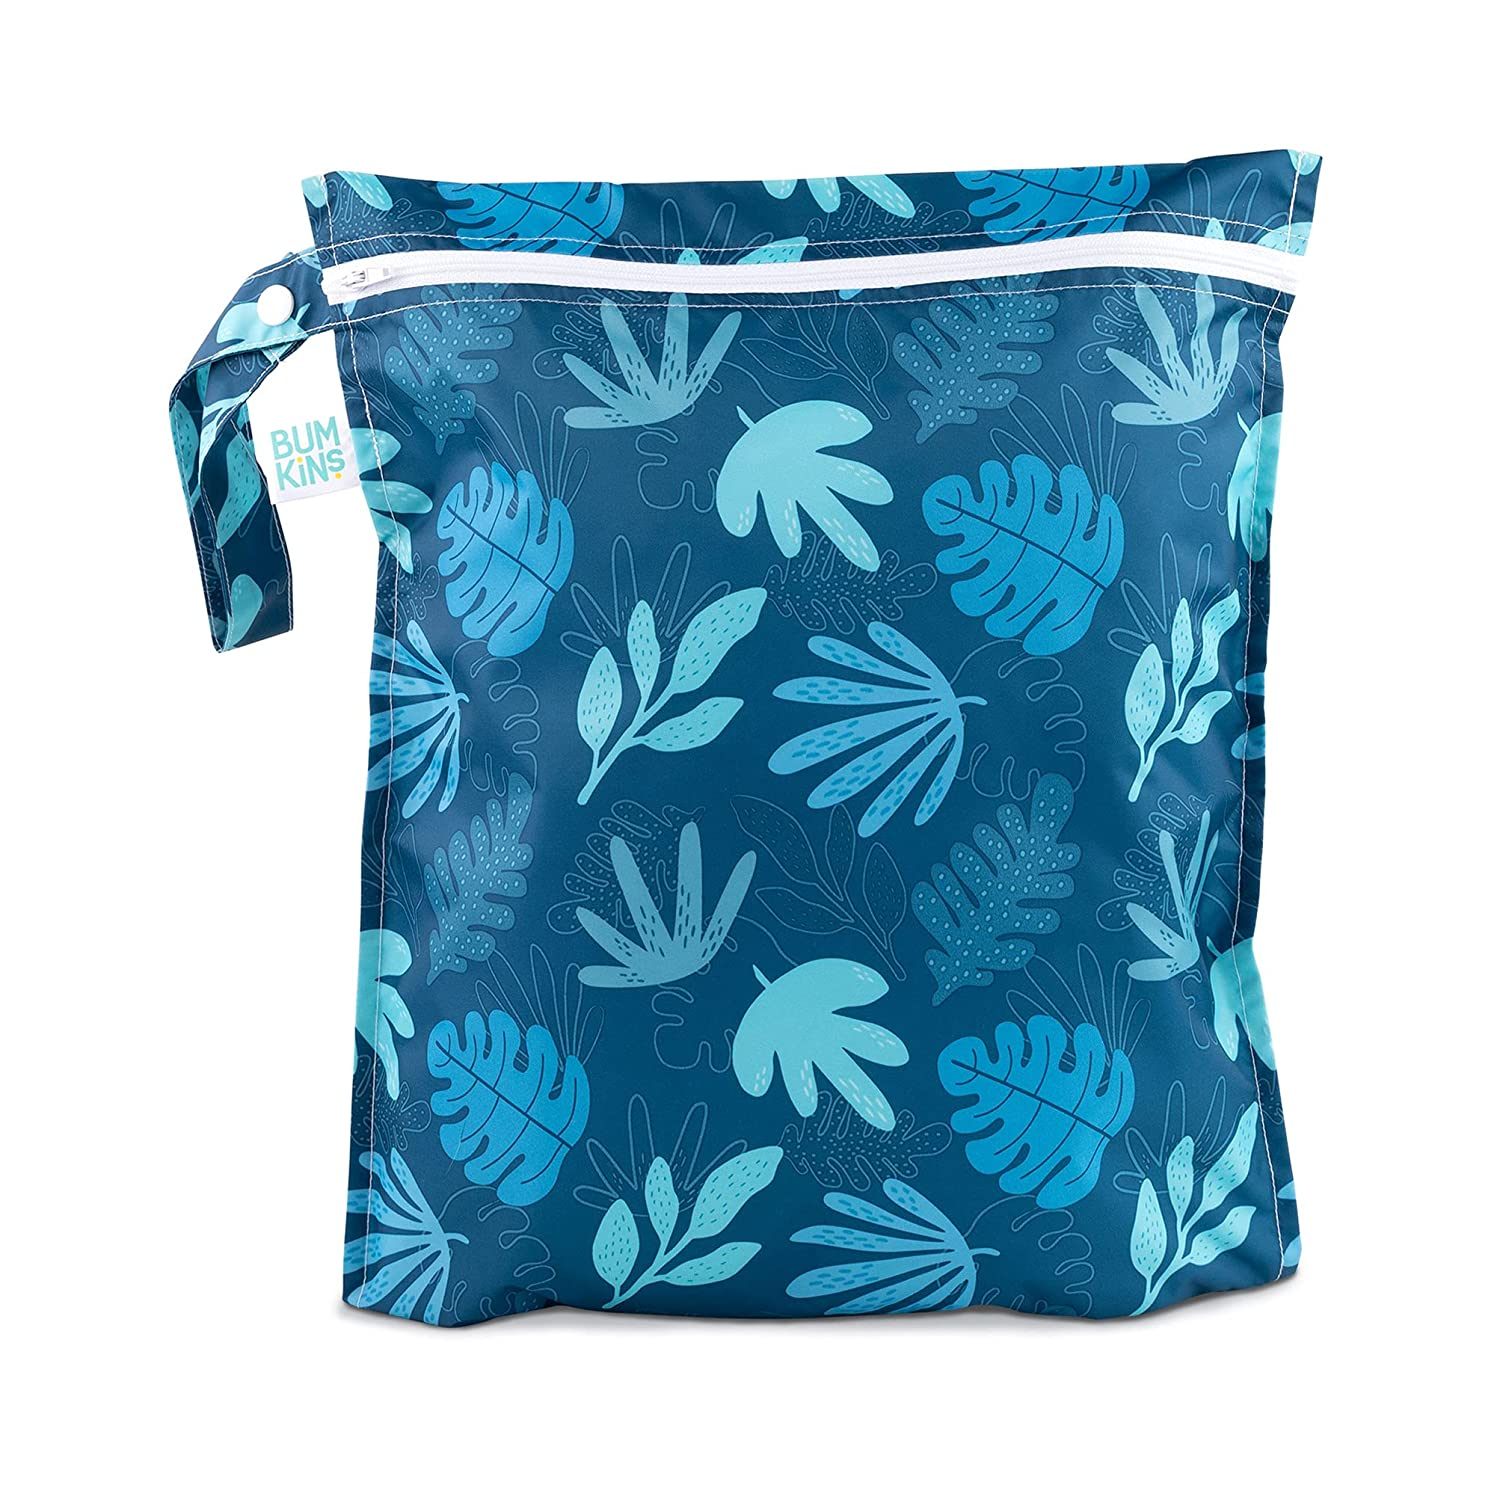 Free shipping New Bumkins Waterproof Wet Cheap sale Bag Washable Beach Reusable Travel for